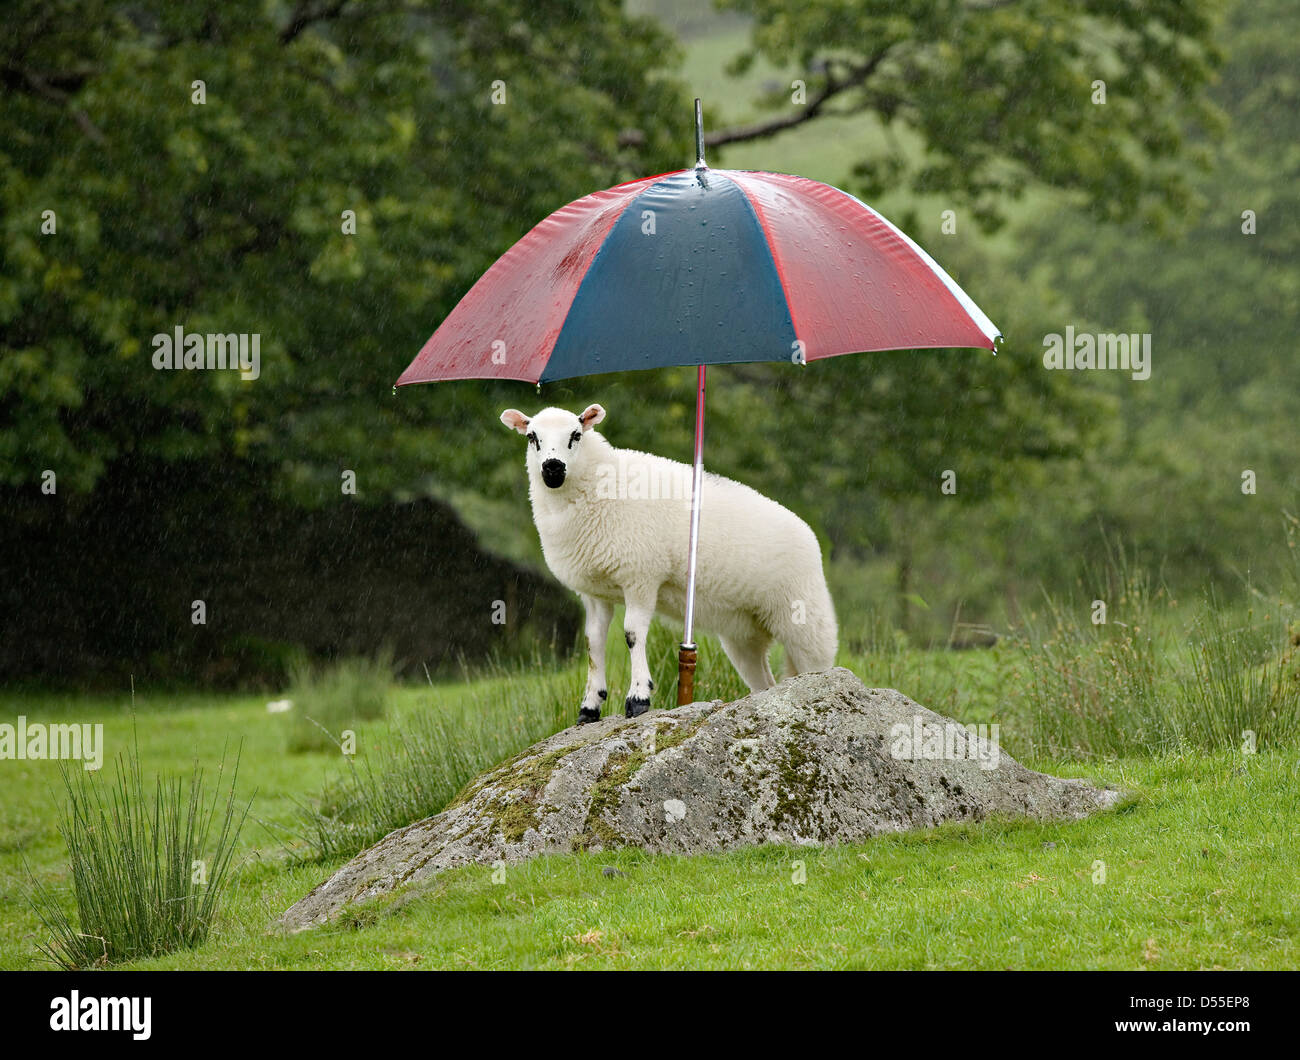 Humorous image of  a lamb in a field, front feet on rock, sheltering under umbrella from the heavy rain. - Stock Image